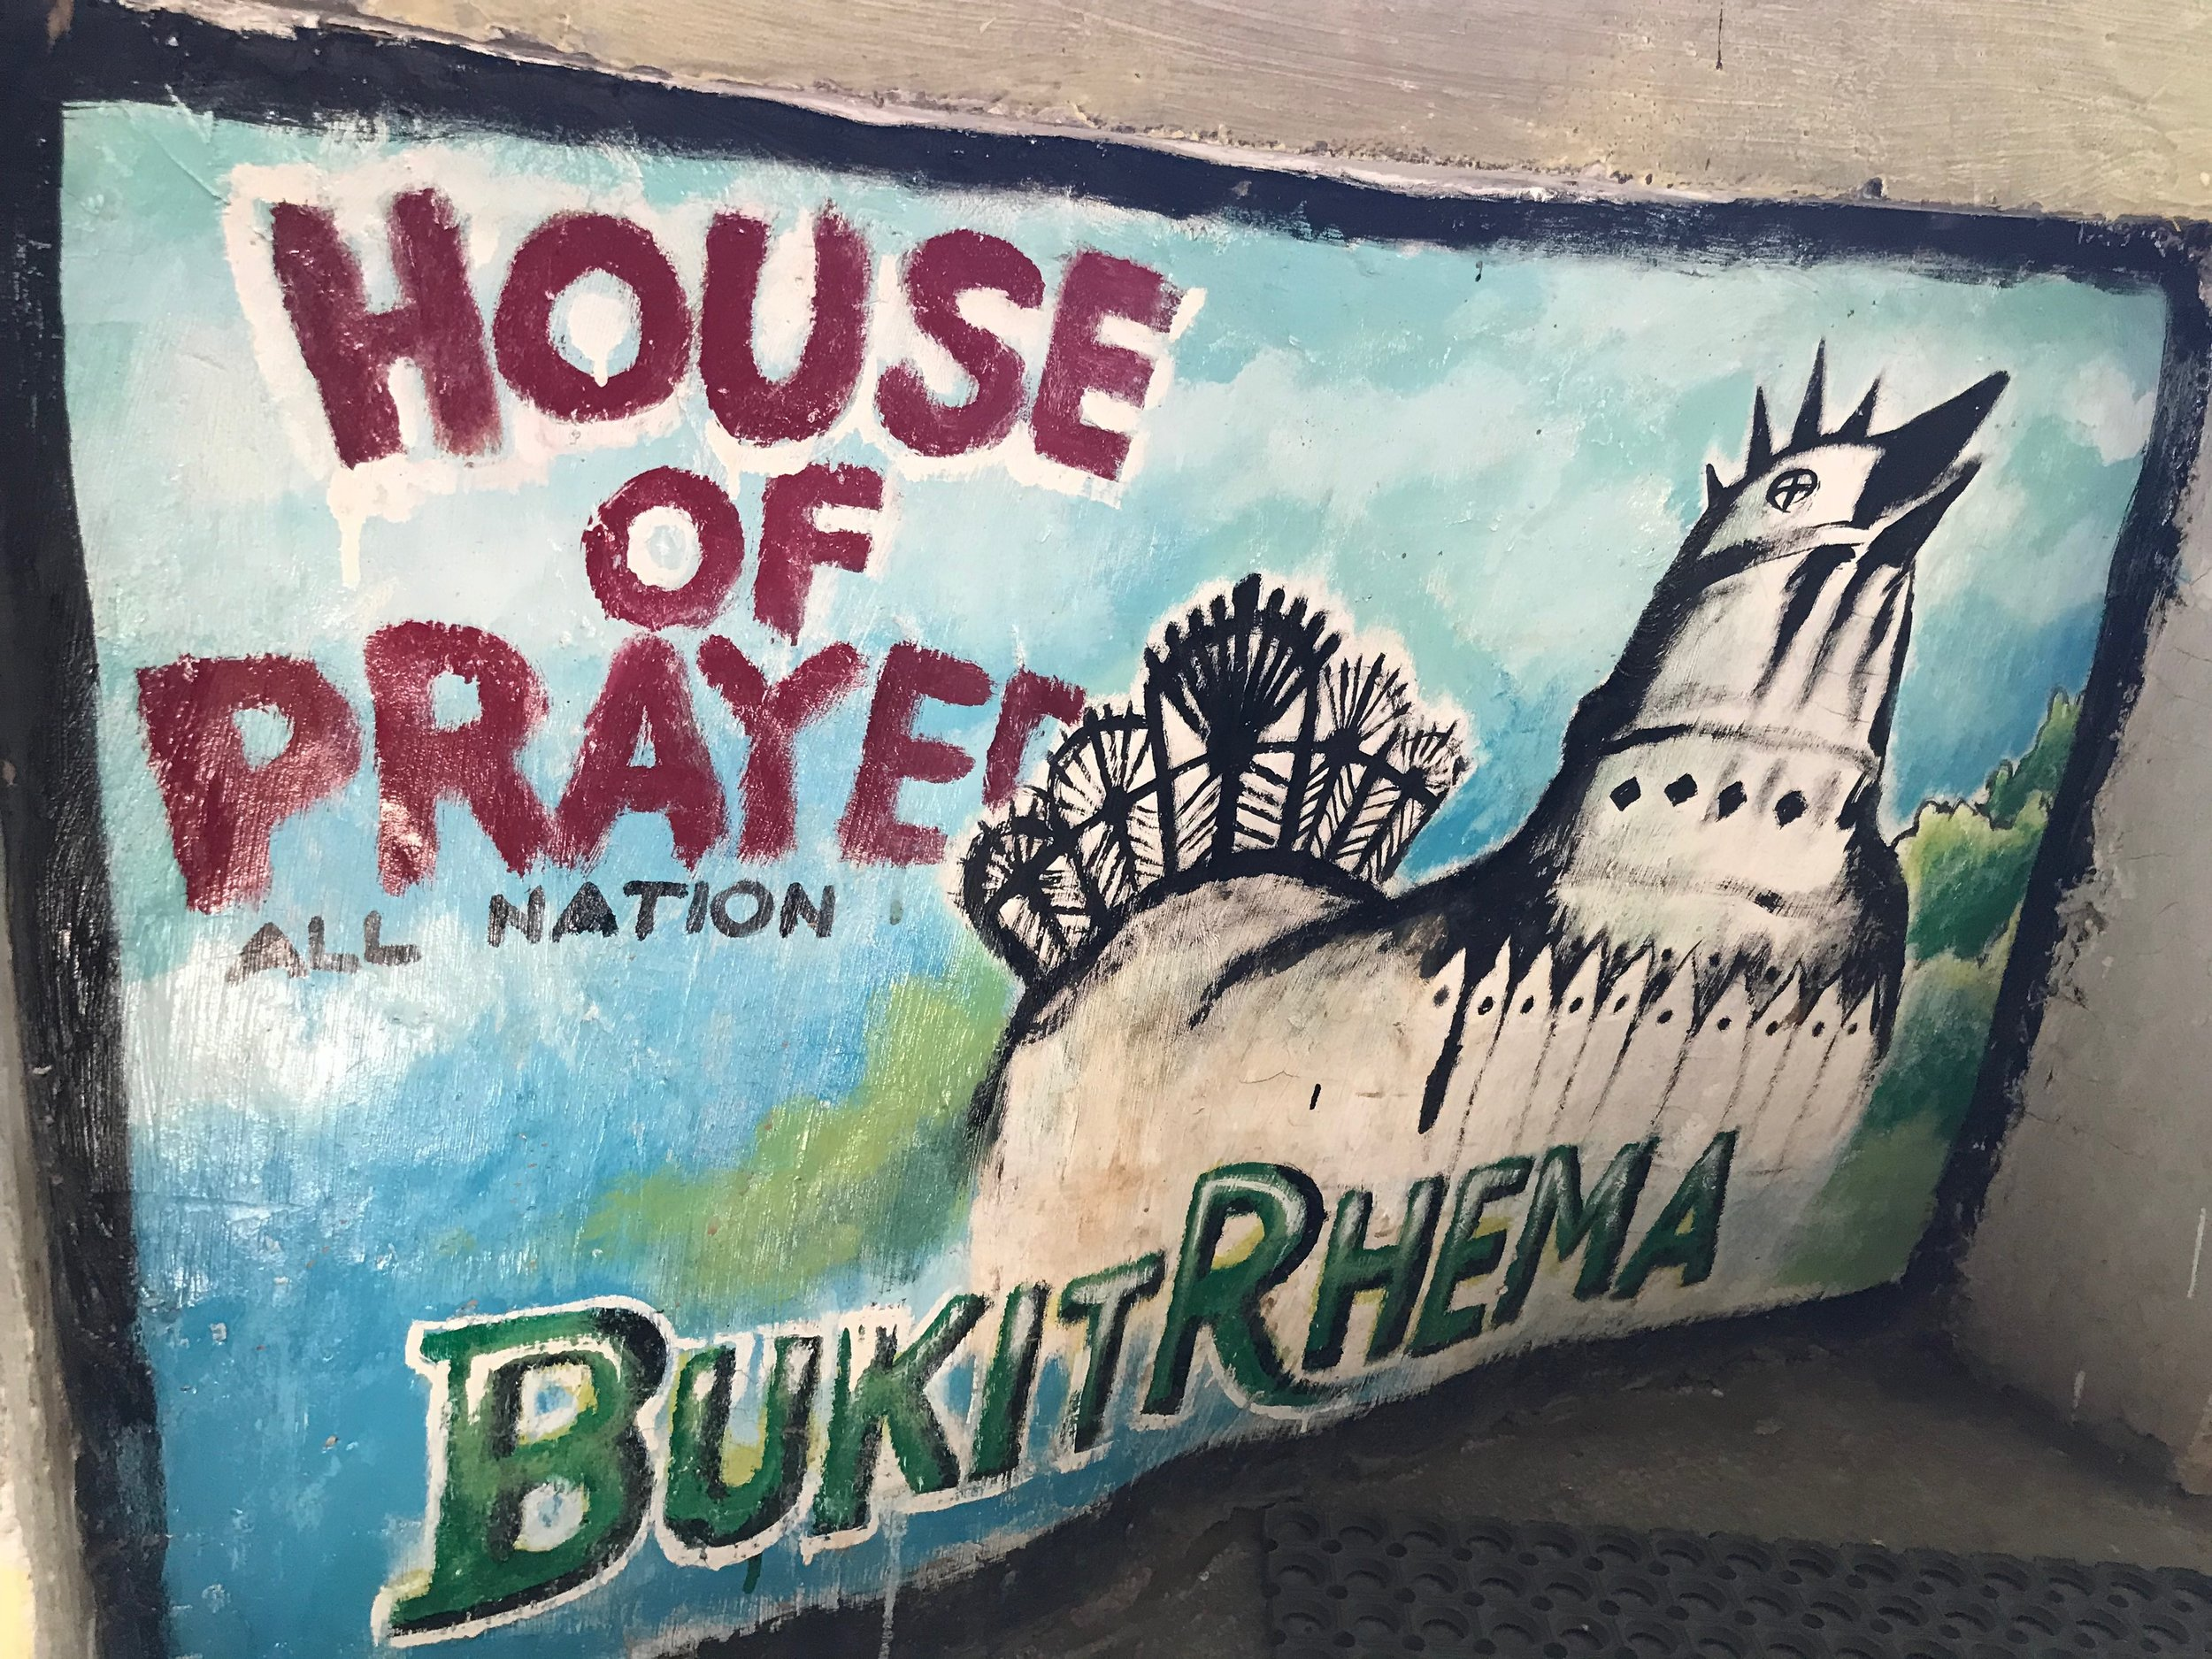 The Bukit Rhema was supposed to actually resemble a dove, the symbol of peace